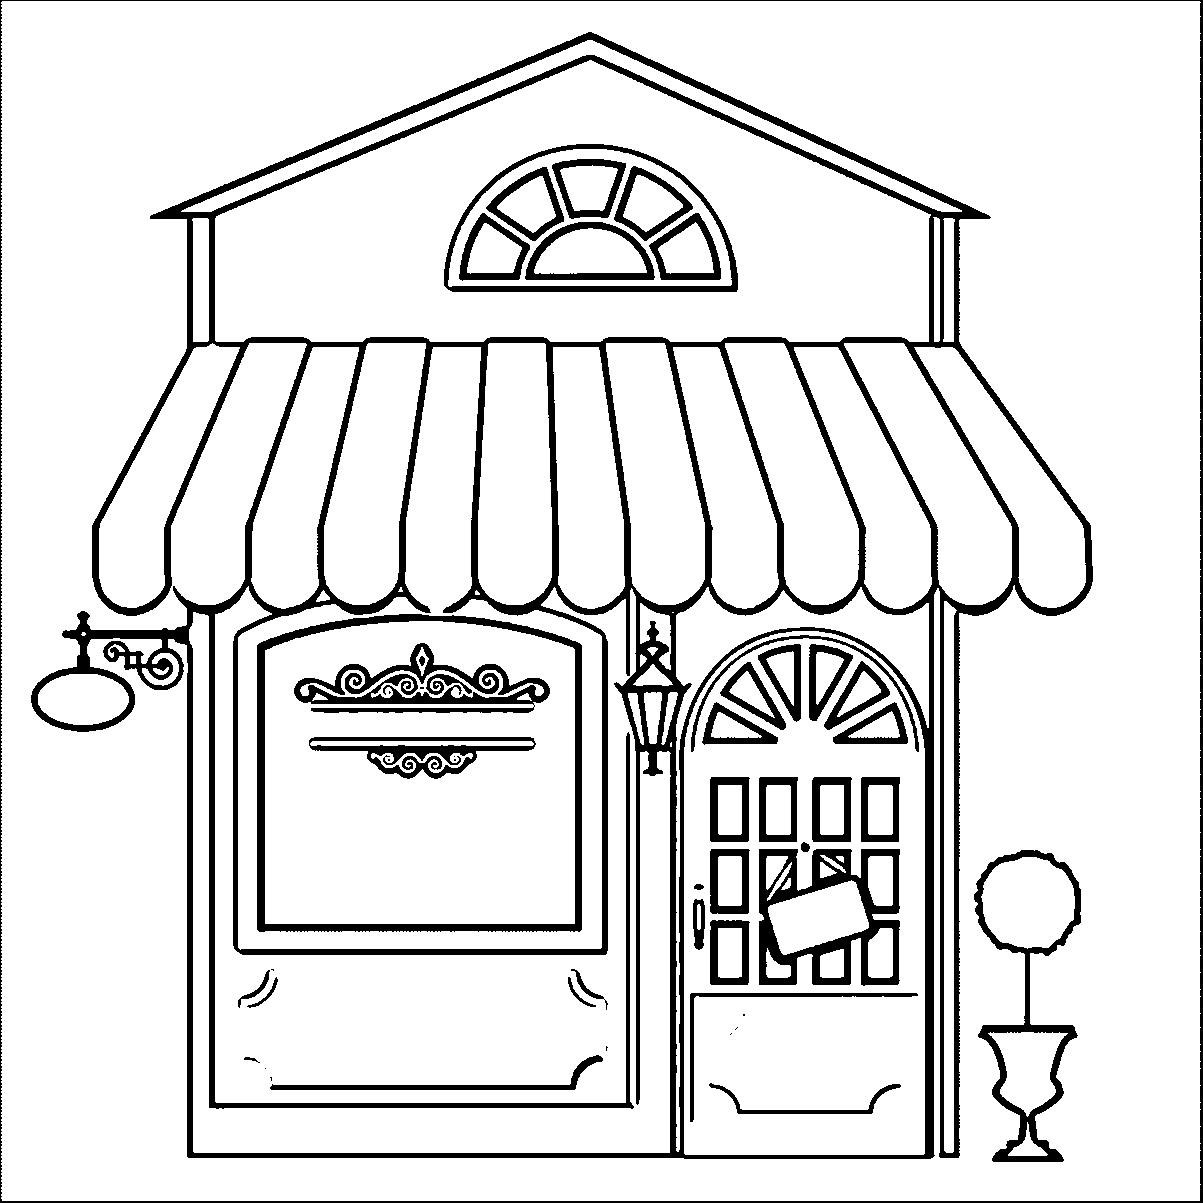 Coloring Pages for Restaurants Free Collection Of Restaurant Building Great Restaurant Coloring Page Wecoloringpage Printable